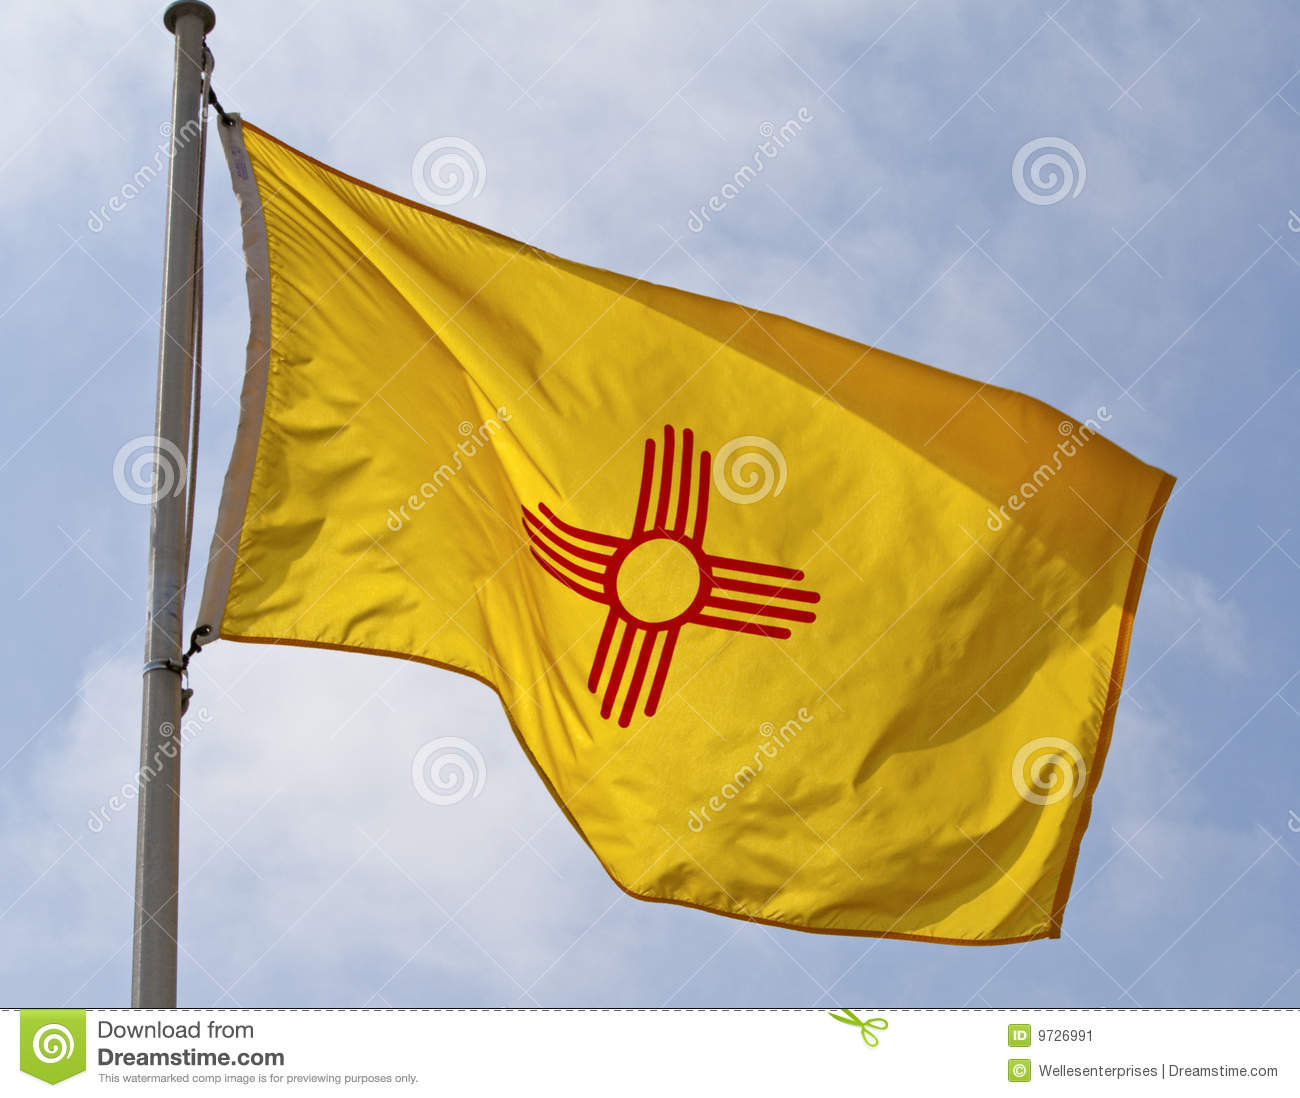 New mexico state flag stock image image of mexico pole 9726991 new mexico state flag buycottarizona